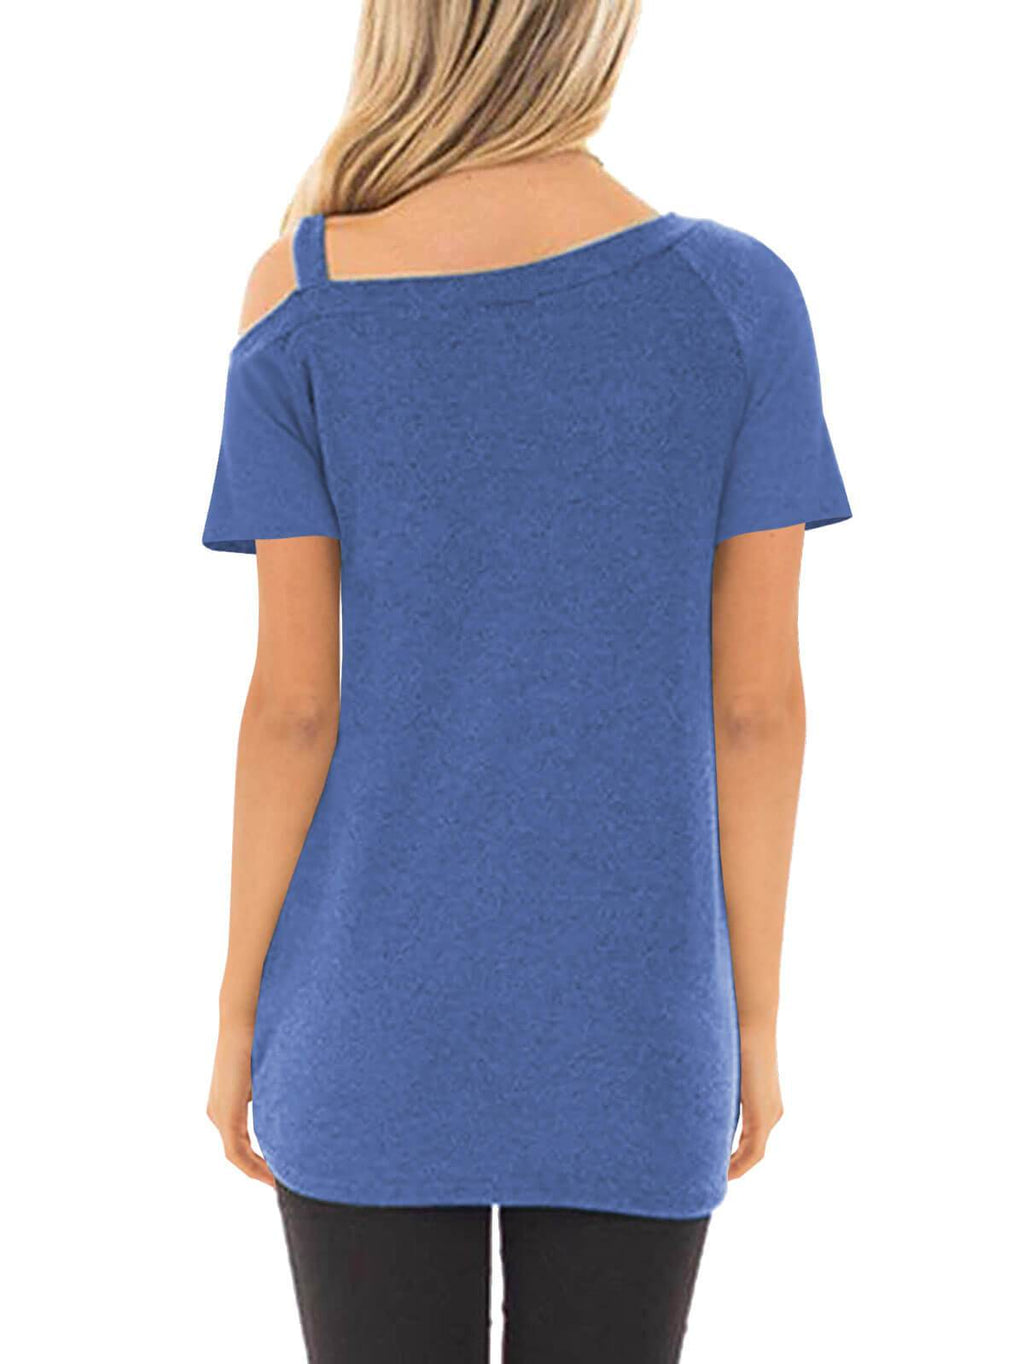 Short Sleeve Off Shoulder Tees - fashionyanclothes